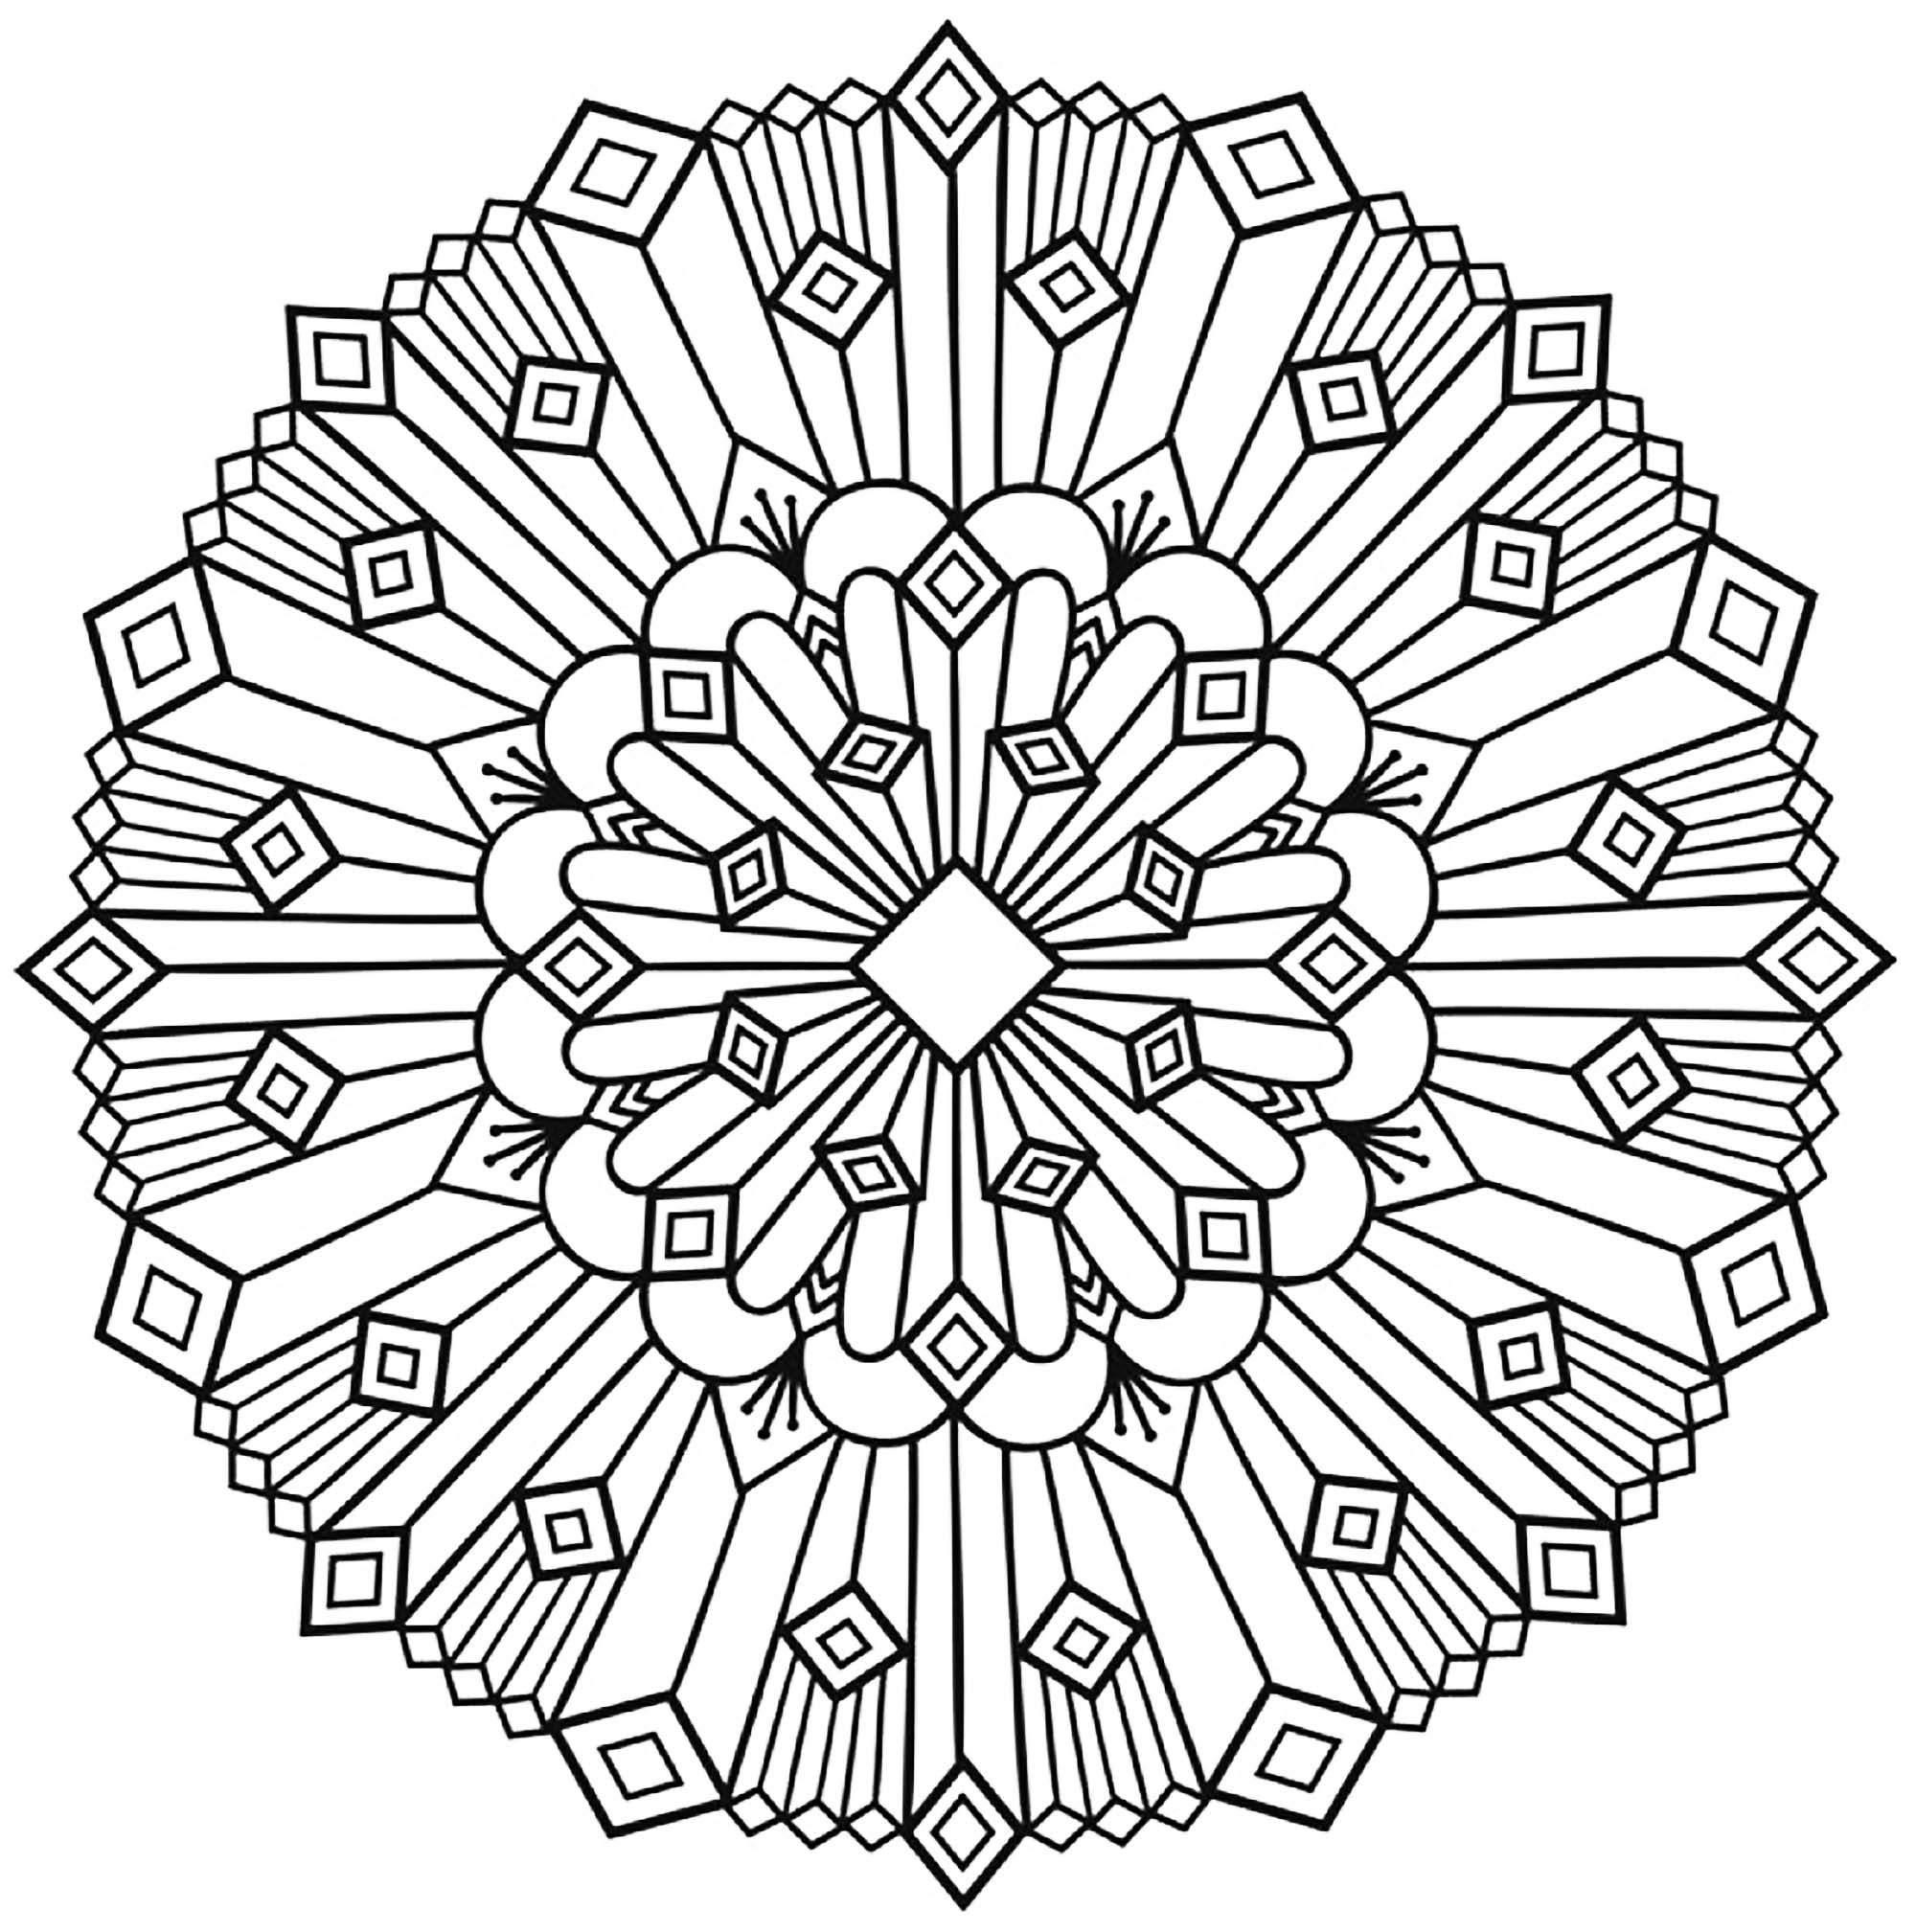 Beautiful Zen & Anti-stress Mandala. Coloring mandalas make it easier to be mindful. Drawing and coloring mandalas is a meditative form of creating artwork that's easier than it looks.